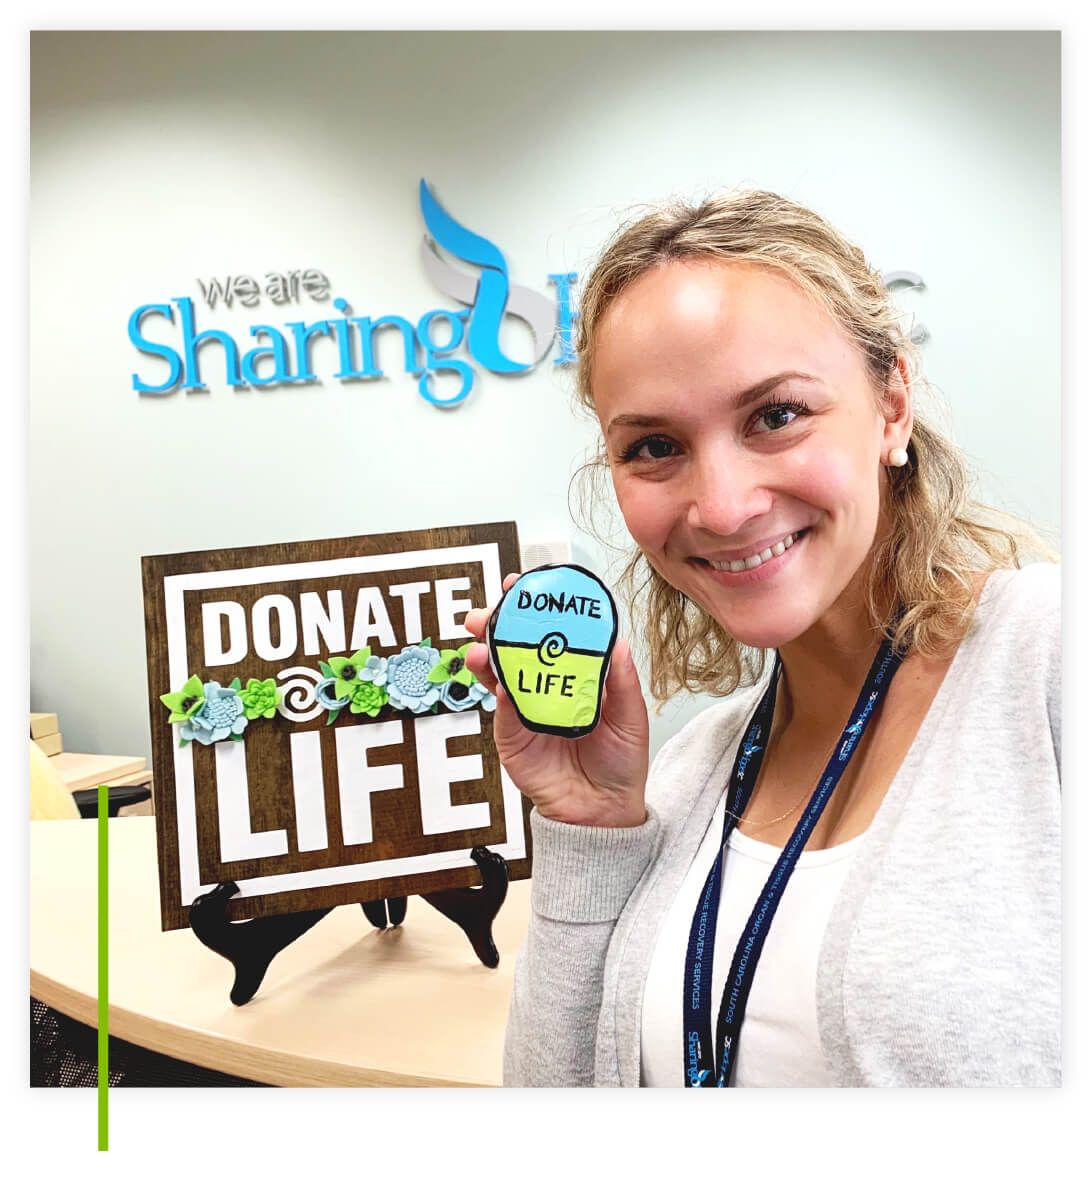 We Are Sharing Hope SC employee smiling and holding at painted Donate Life decorative rock in the We Are We Are Sharing Hope SC office.